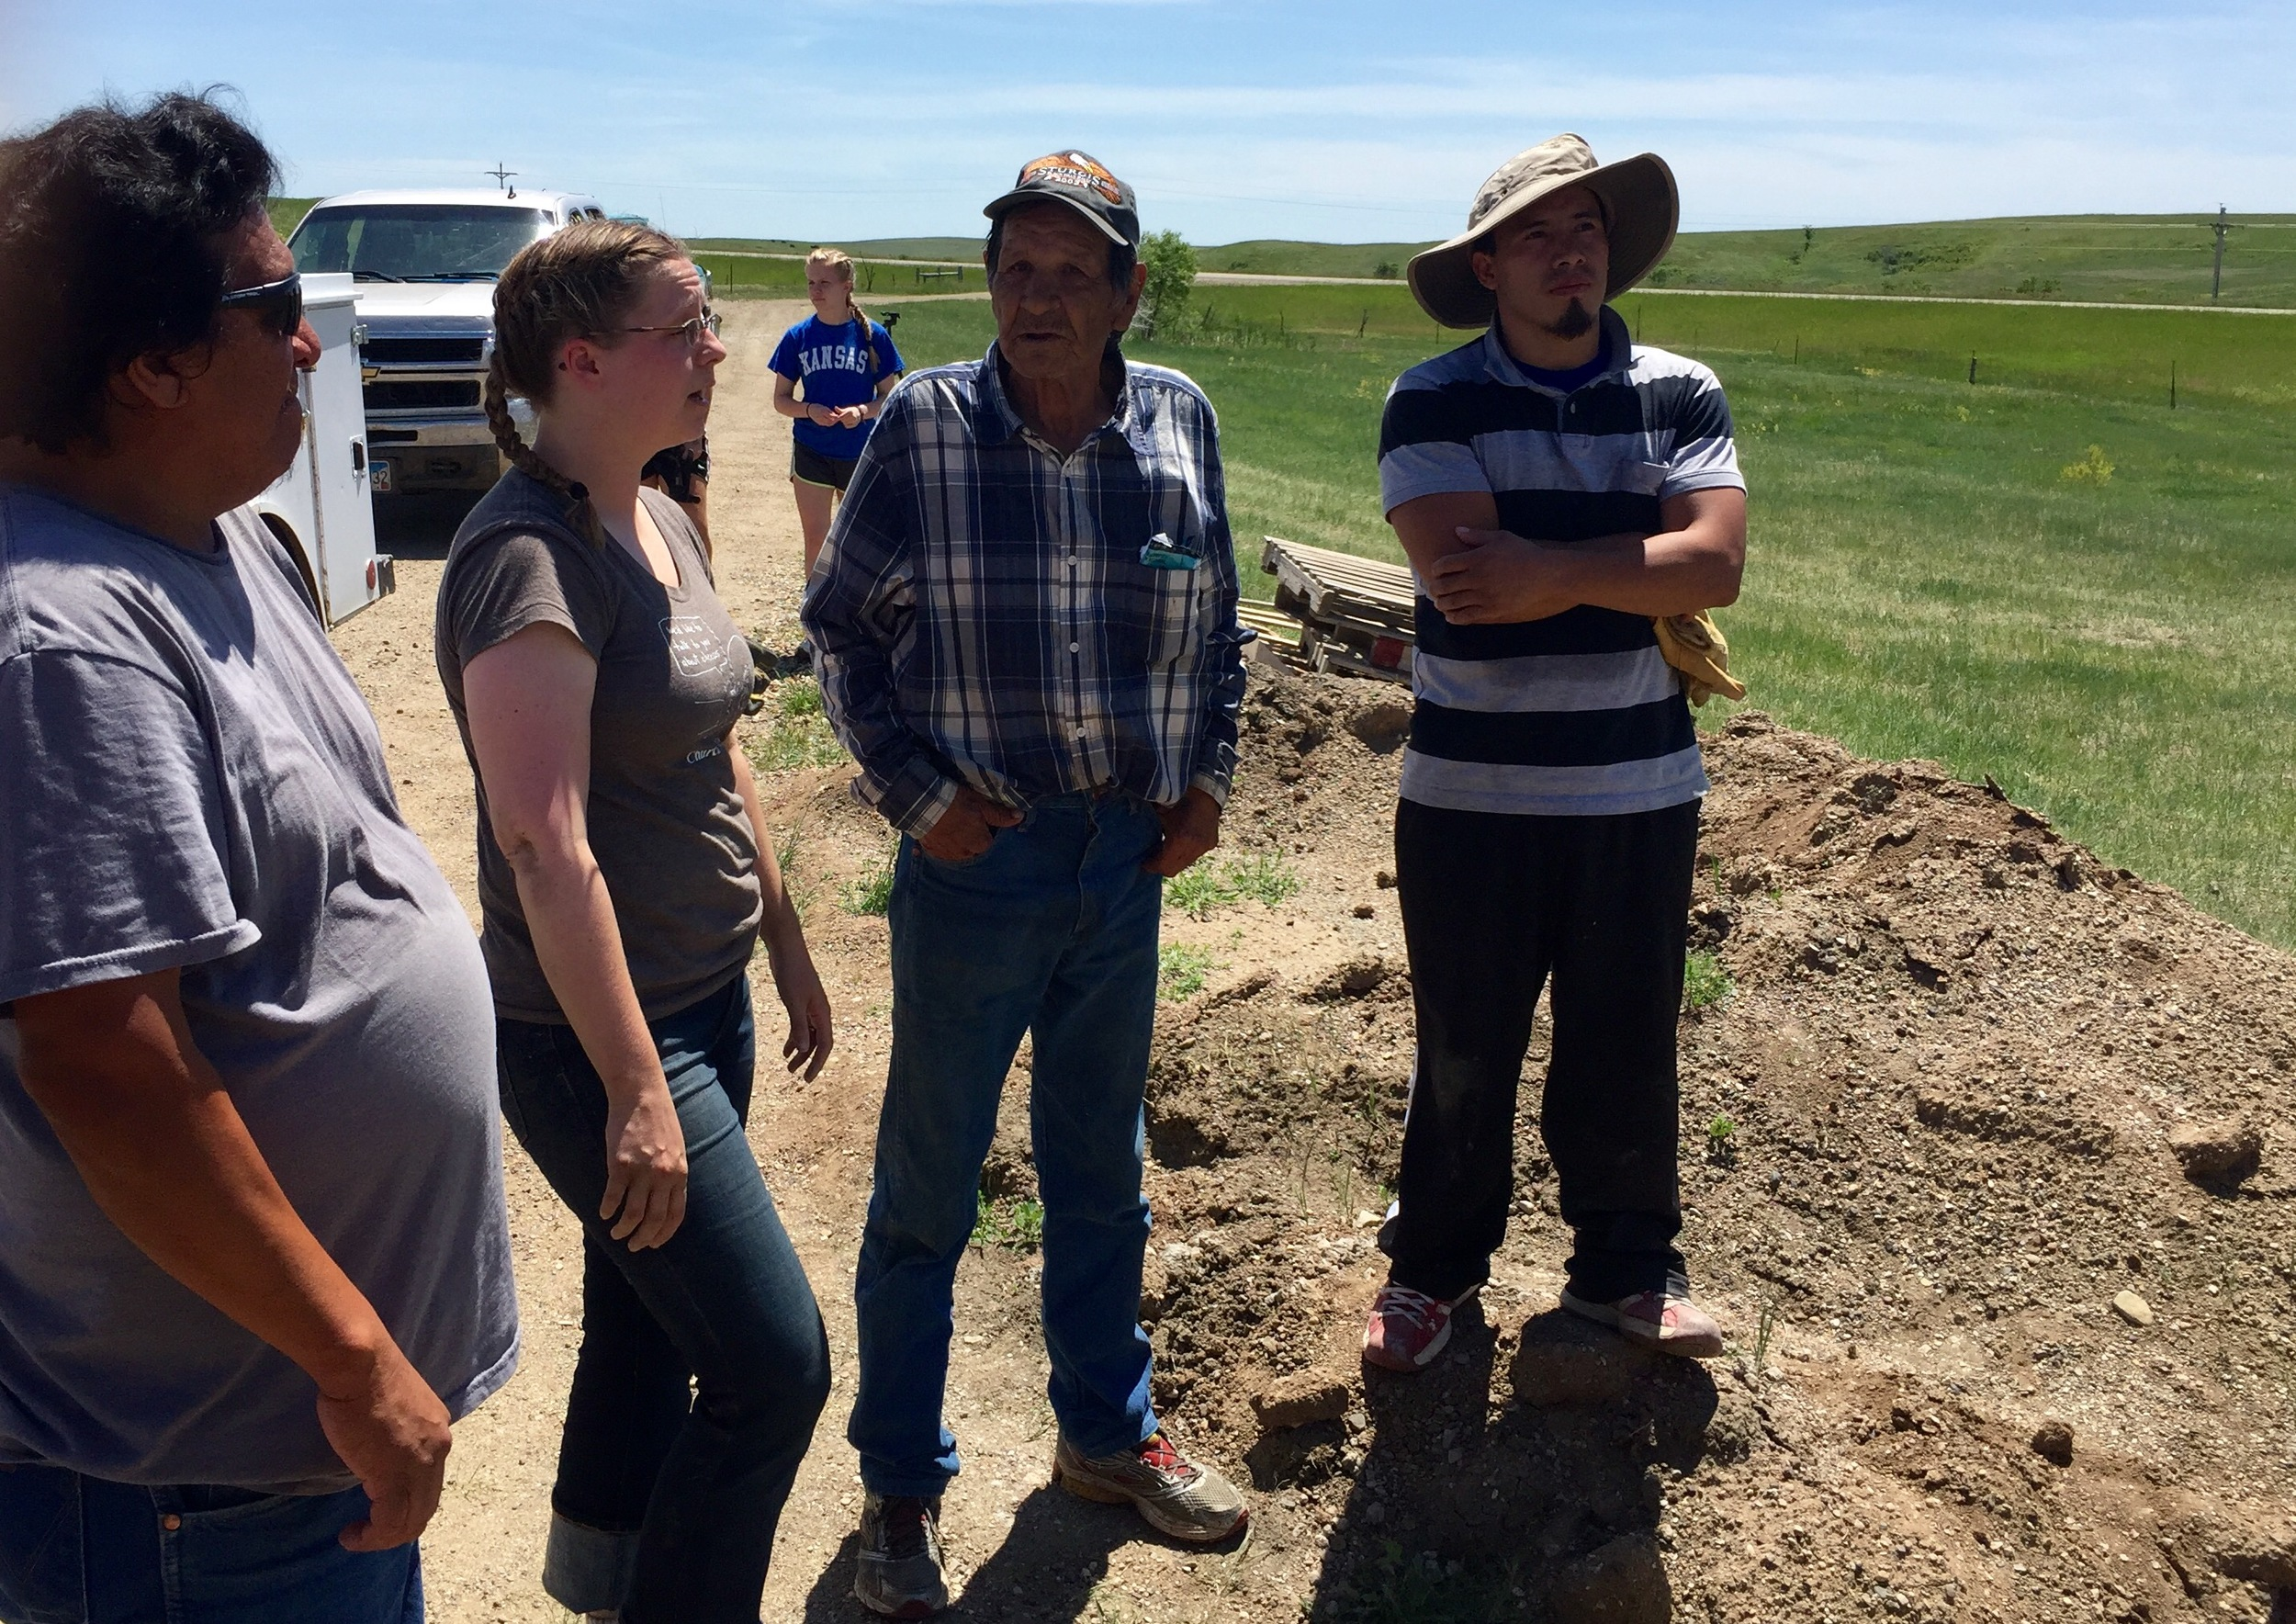 Plymouth Leader Eleanor (second from left) speaks with the housing recipients - Kee, Ford, and Elvis - at the housing site of Ford (second from right).